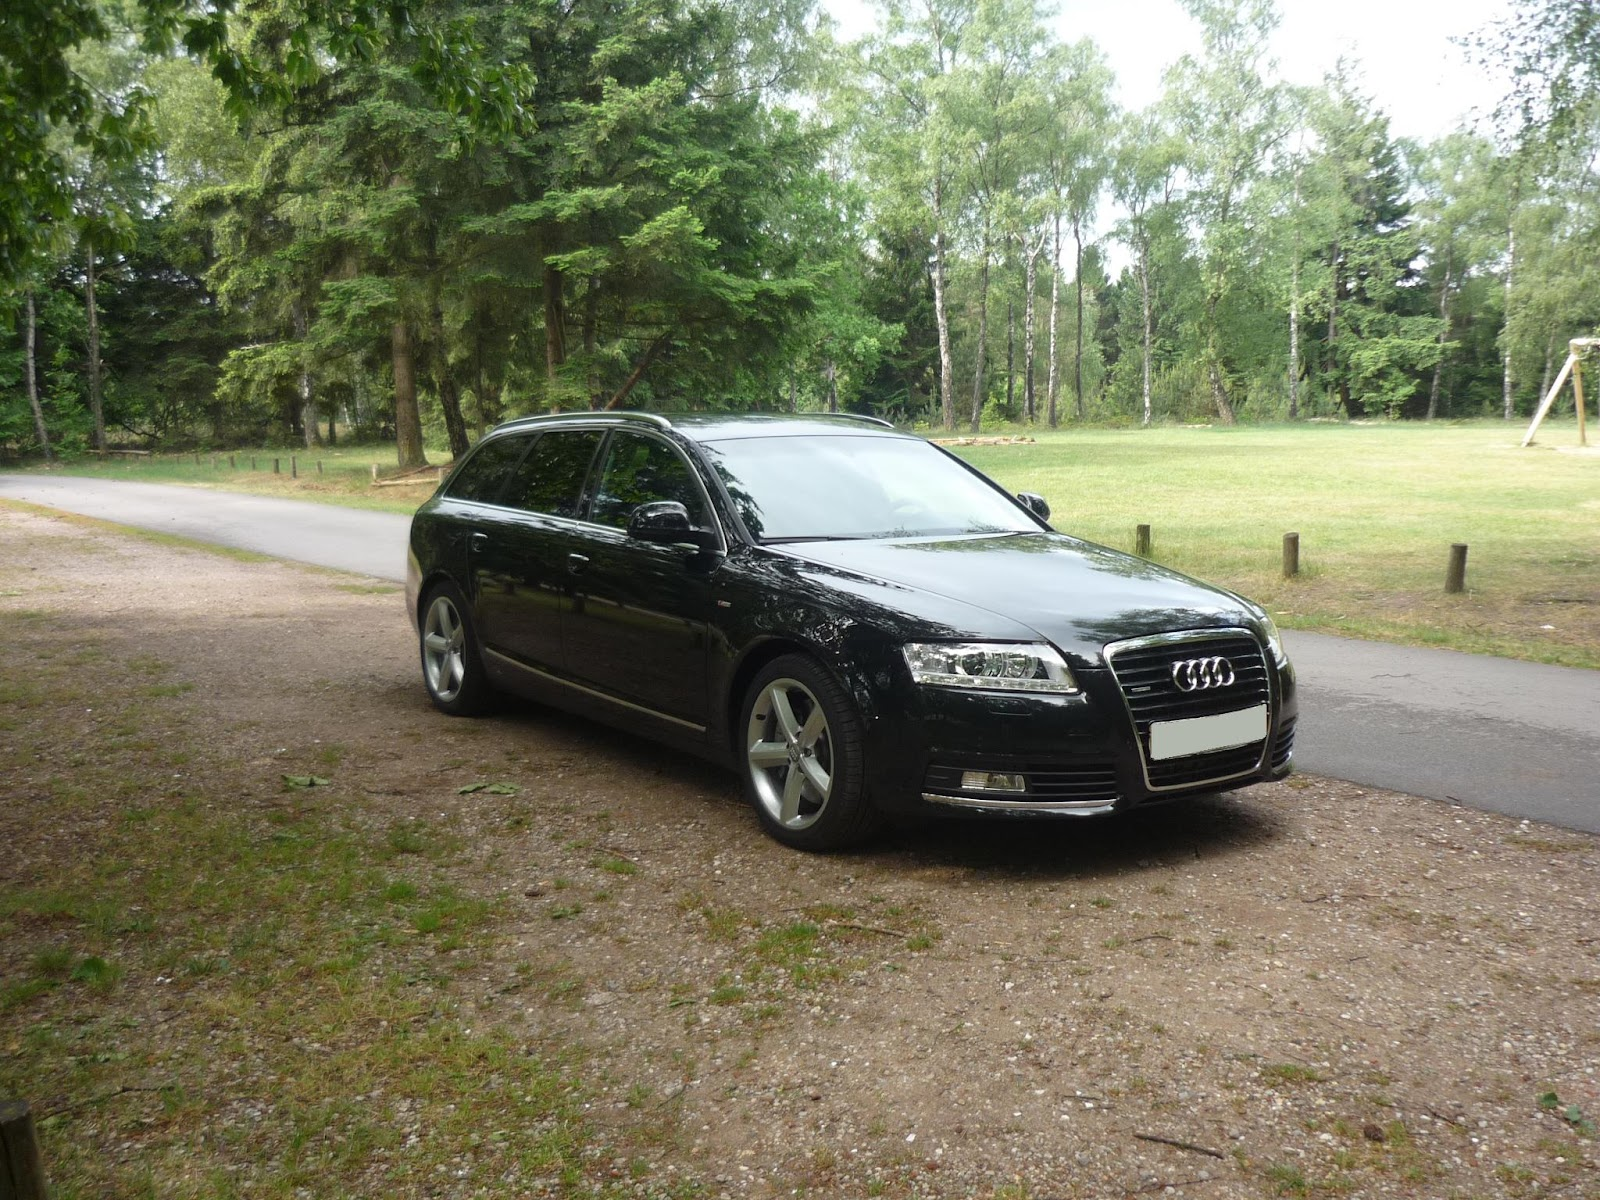 guitigefilmpjes picture update audi a6 3 0 tdi avant s line. Black Bedroom Furniture Sets. Home Design Ideas